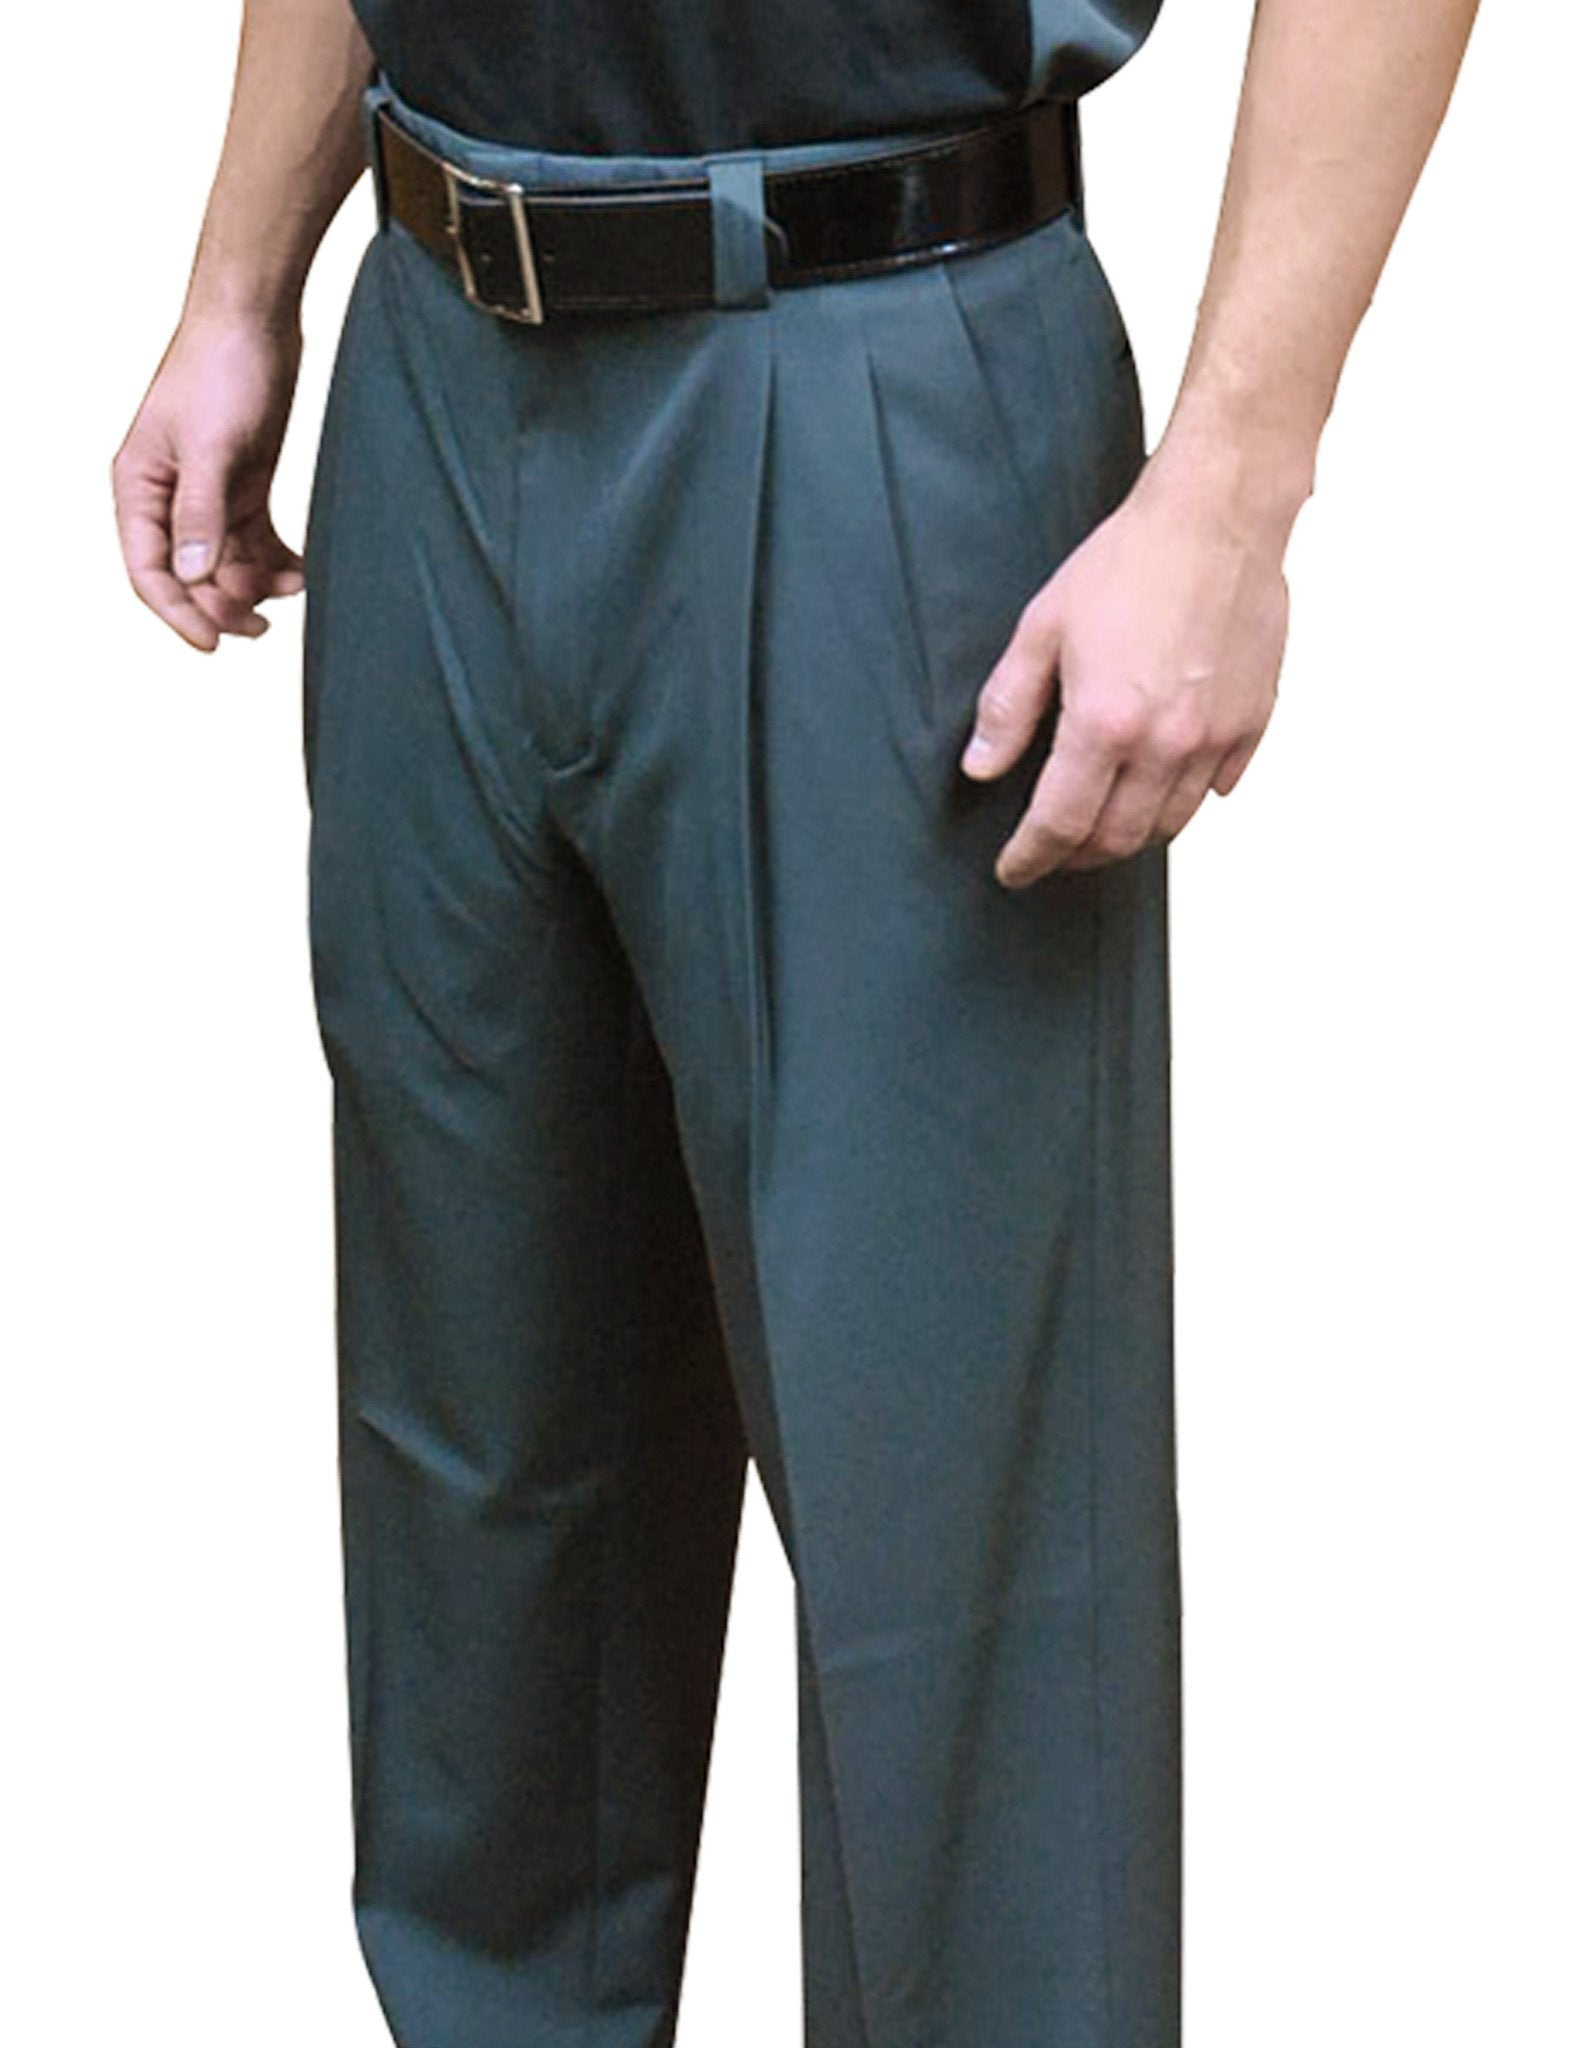 "BBS395-Smitty - ""NEW EXPANDER WAISTBAND - 4-Way Stretch"" Pleated Combo Pants-Charcoal Grey"